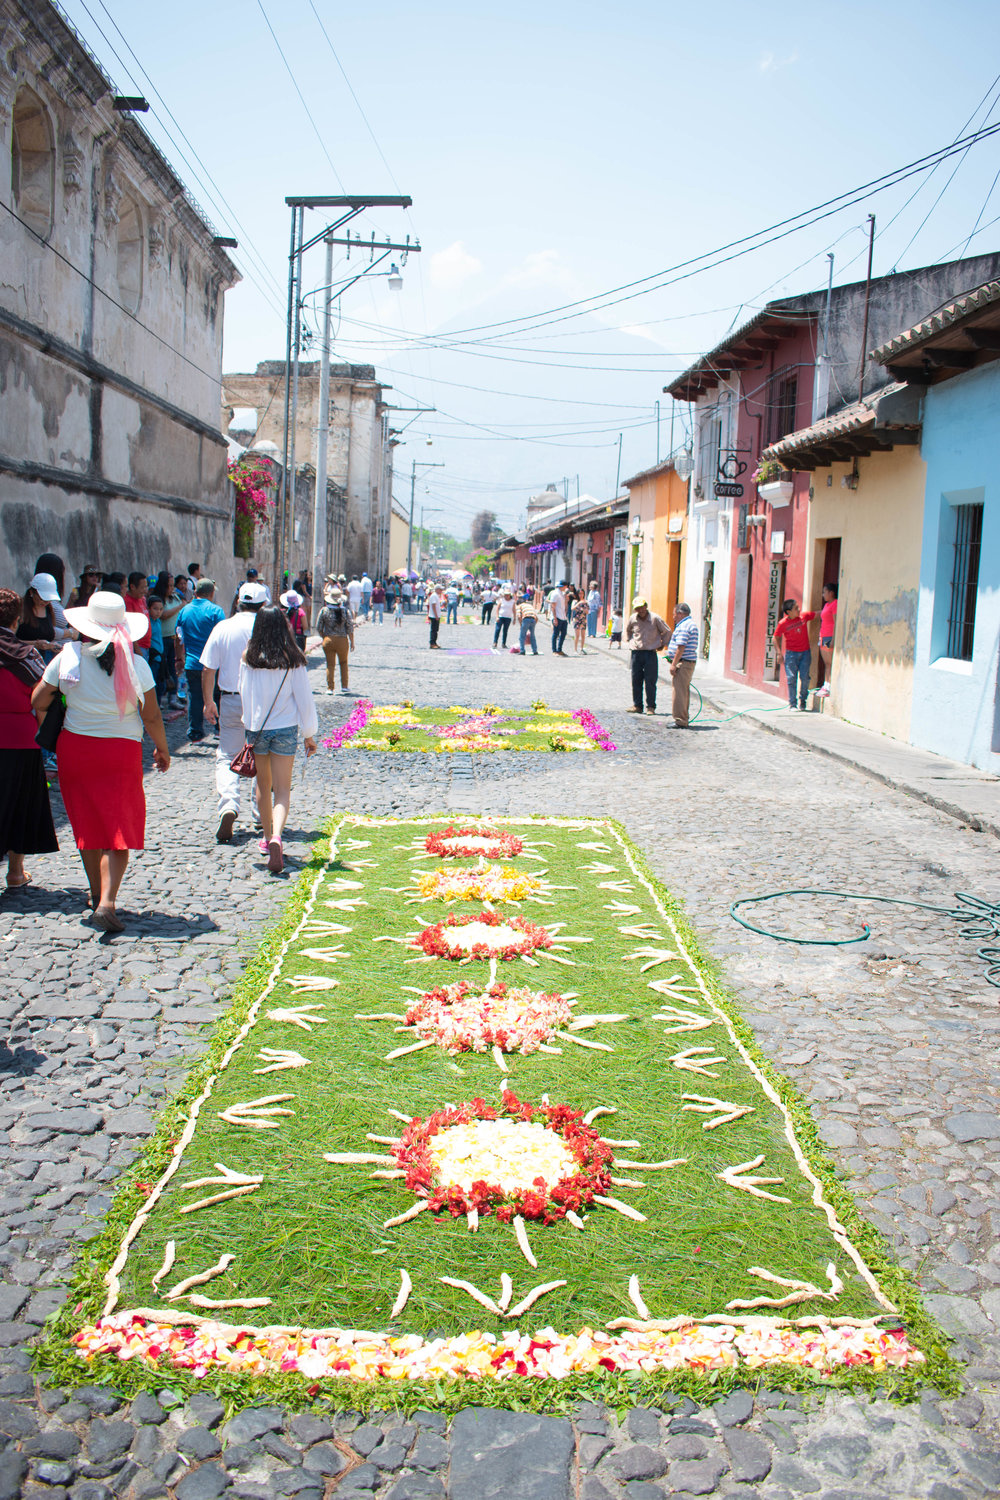 Colourful Carpets in Honour of Semana Santa in Antigua, Guatemala